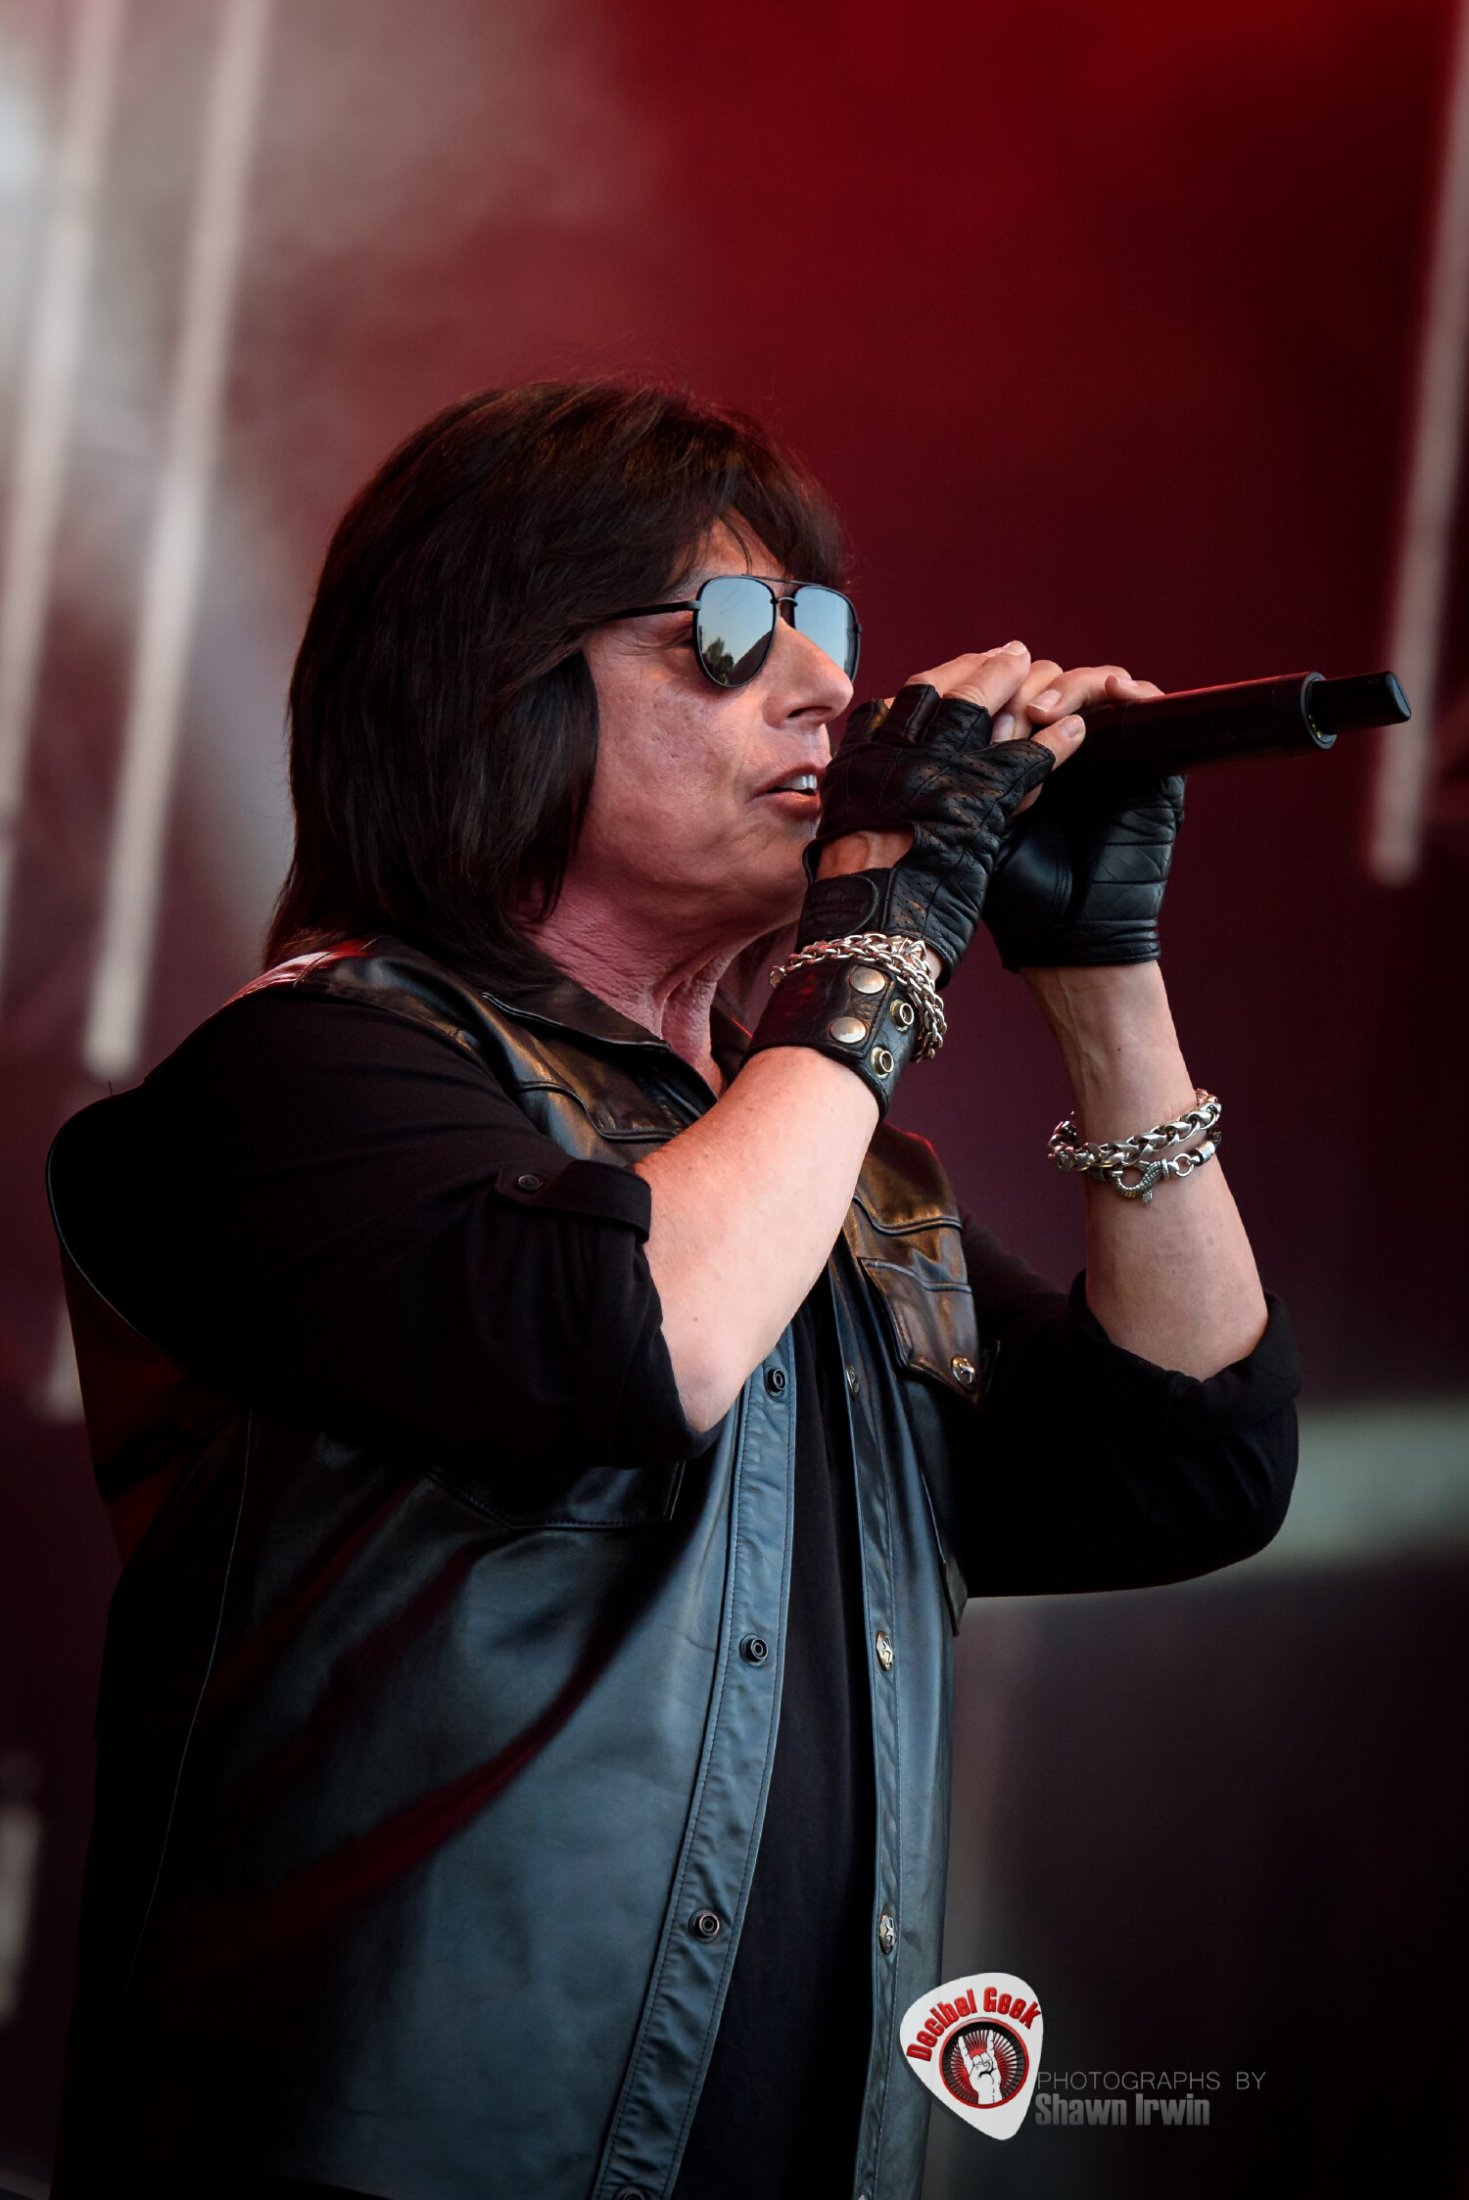 Joe Lynn Turner #26-Sweden Rock 2019-Shawn Irwin